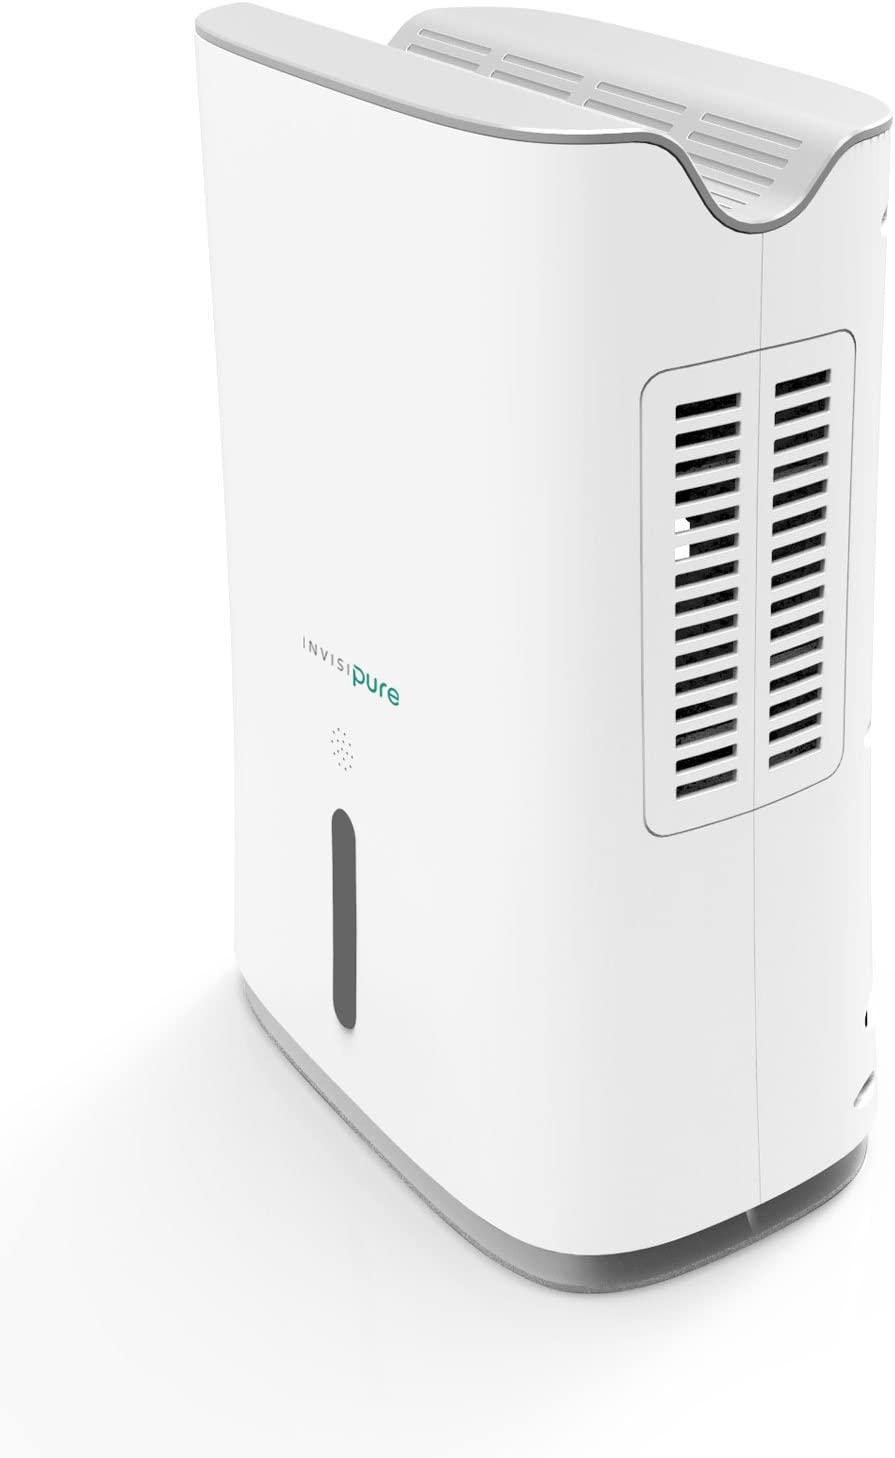 InvisiPure Hydrowave Dehumidifier - Dehum Compact Directly managed store Washington Mall Small Portable